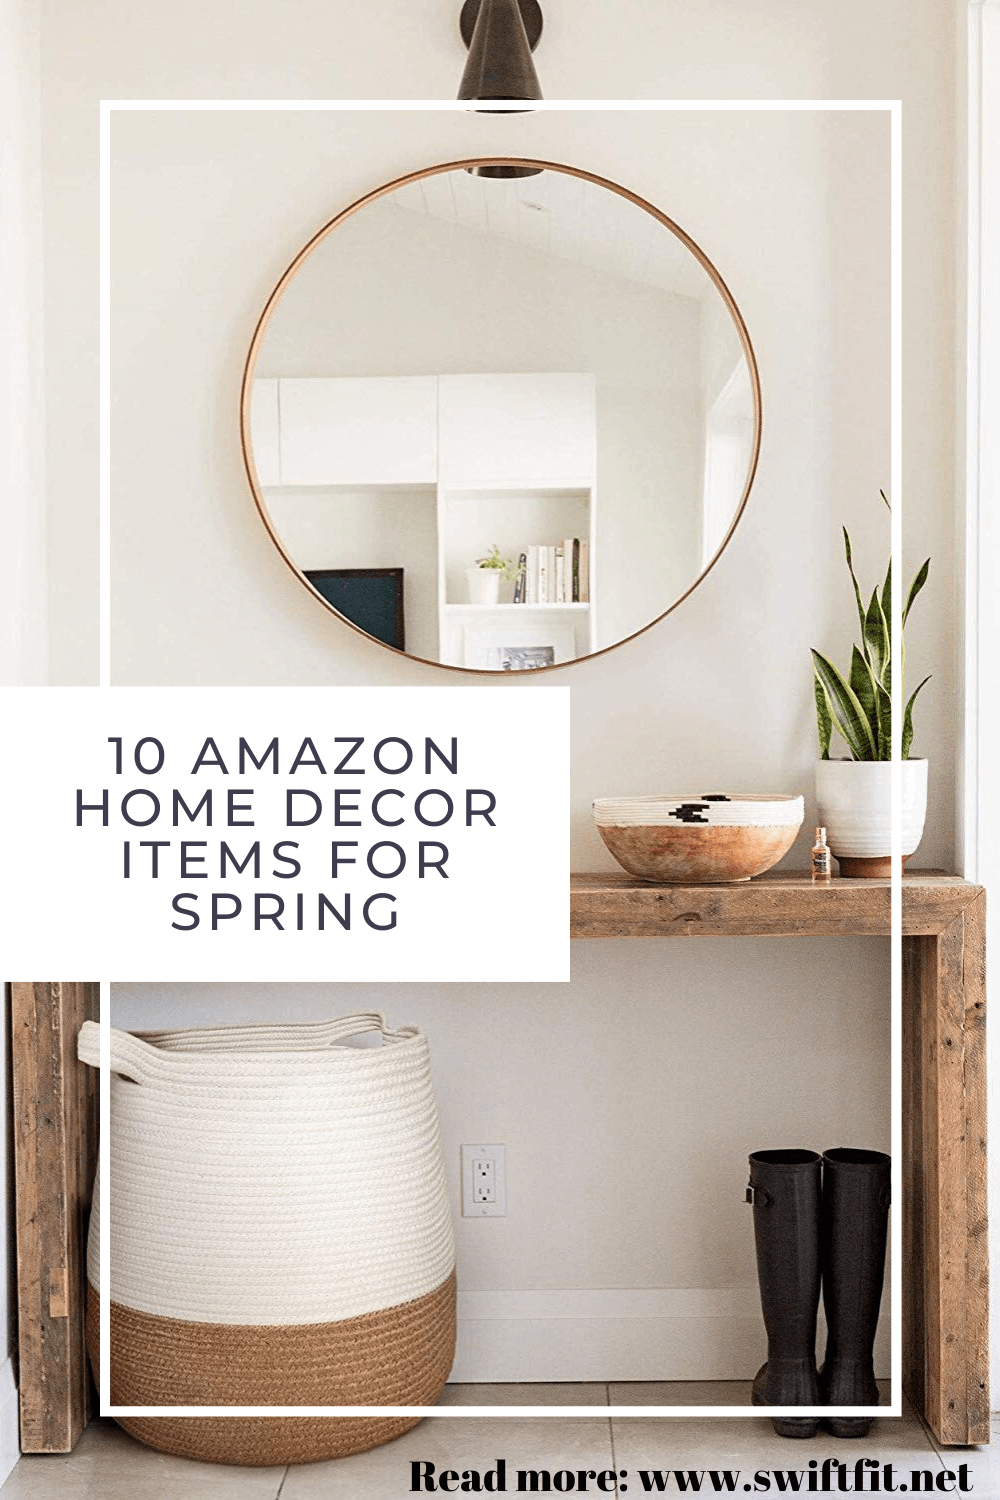 Making a simple decor change in a room can completely transform the space for the season. We're sharing our favorite budget-friendly Amazon home decor finds for spring to help you give your home a light and airy refresh!